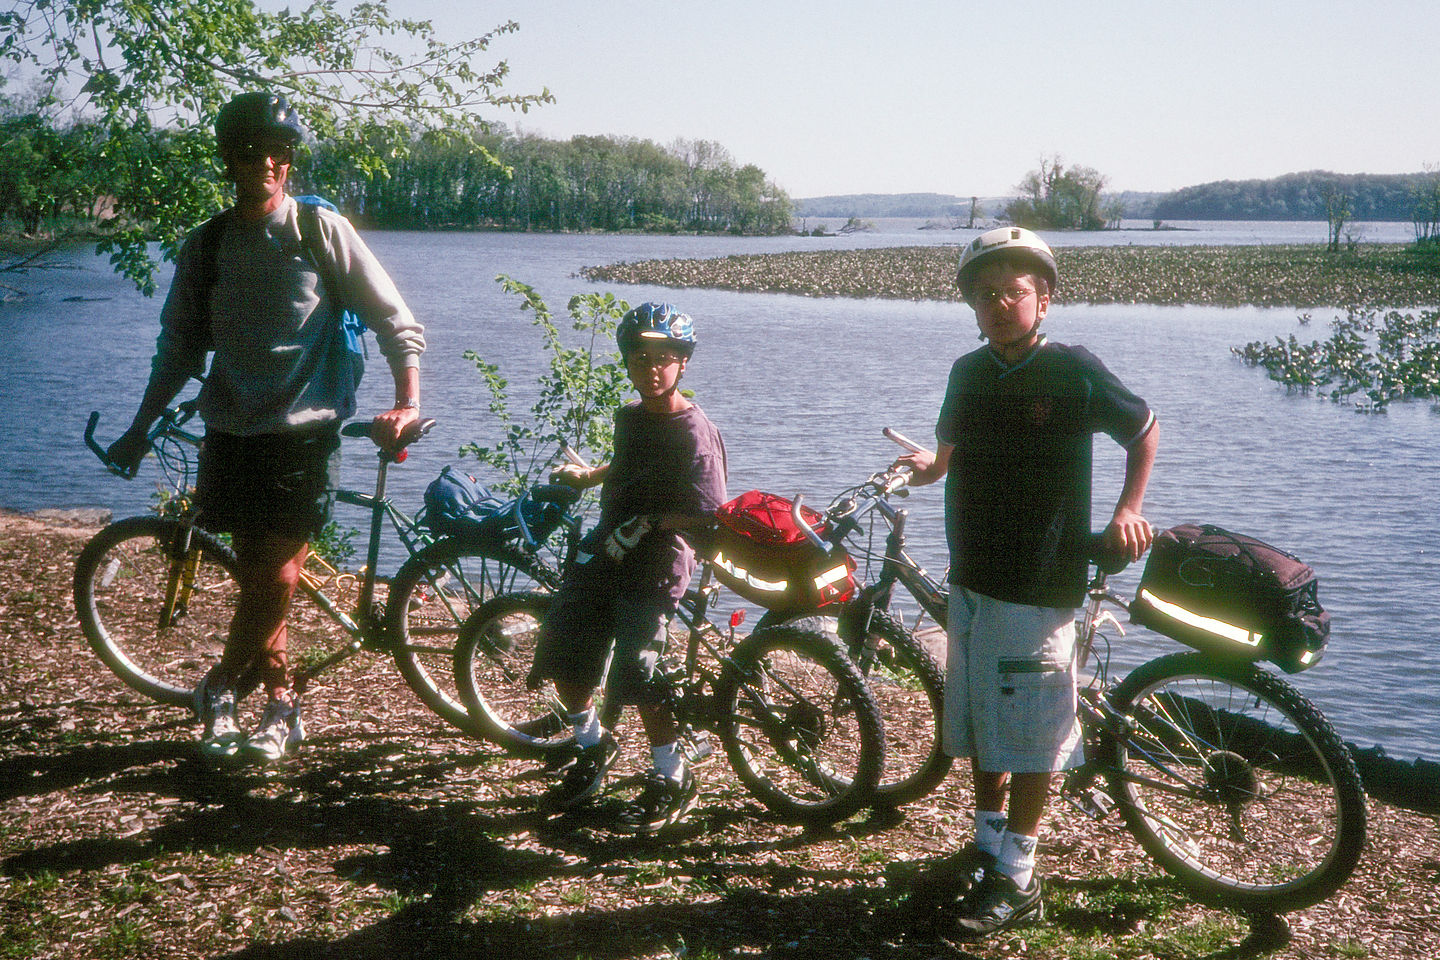 Herb and boys on Mt Vernon bike trail